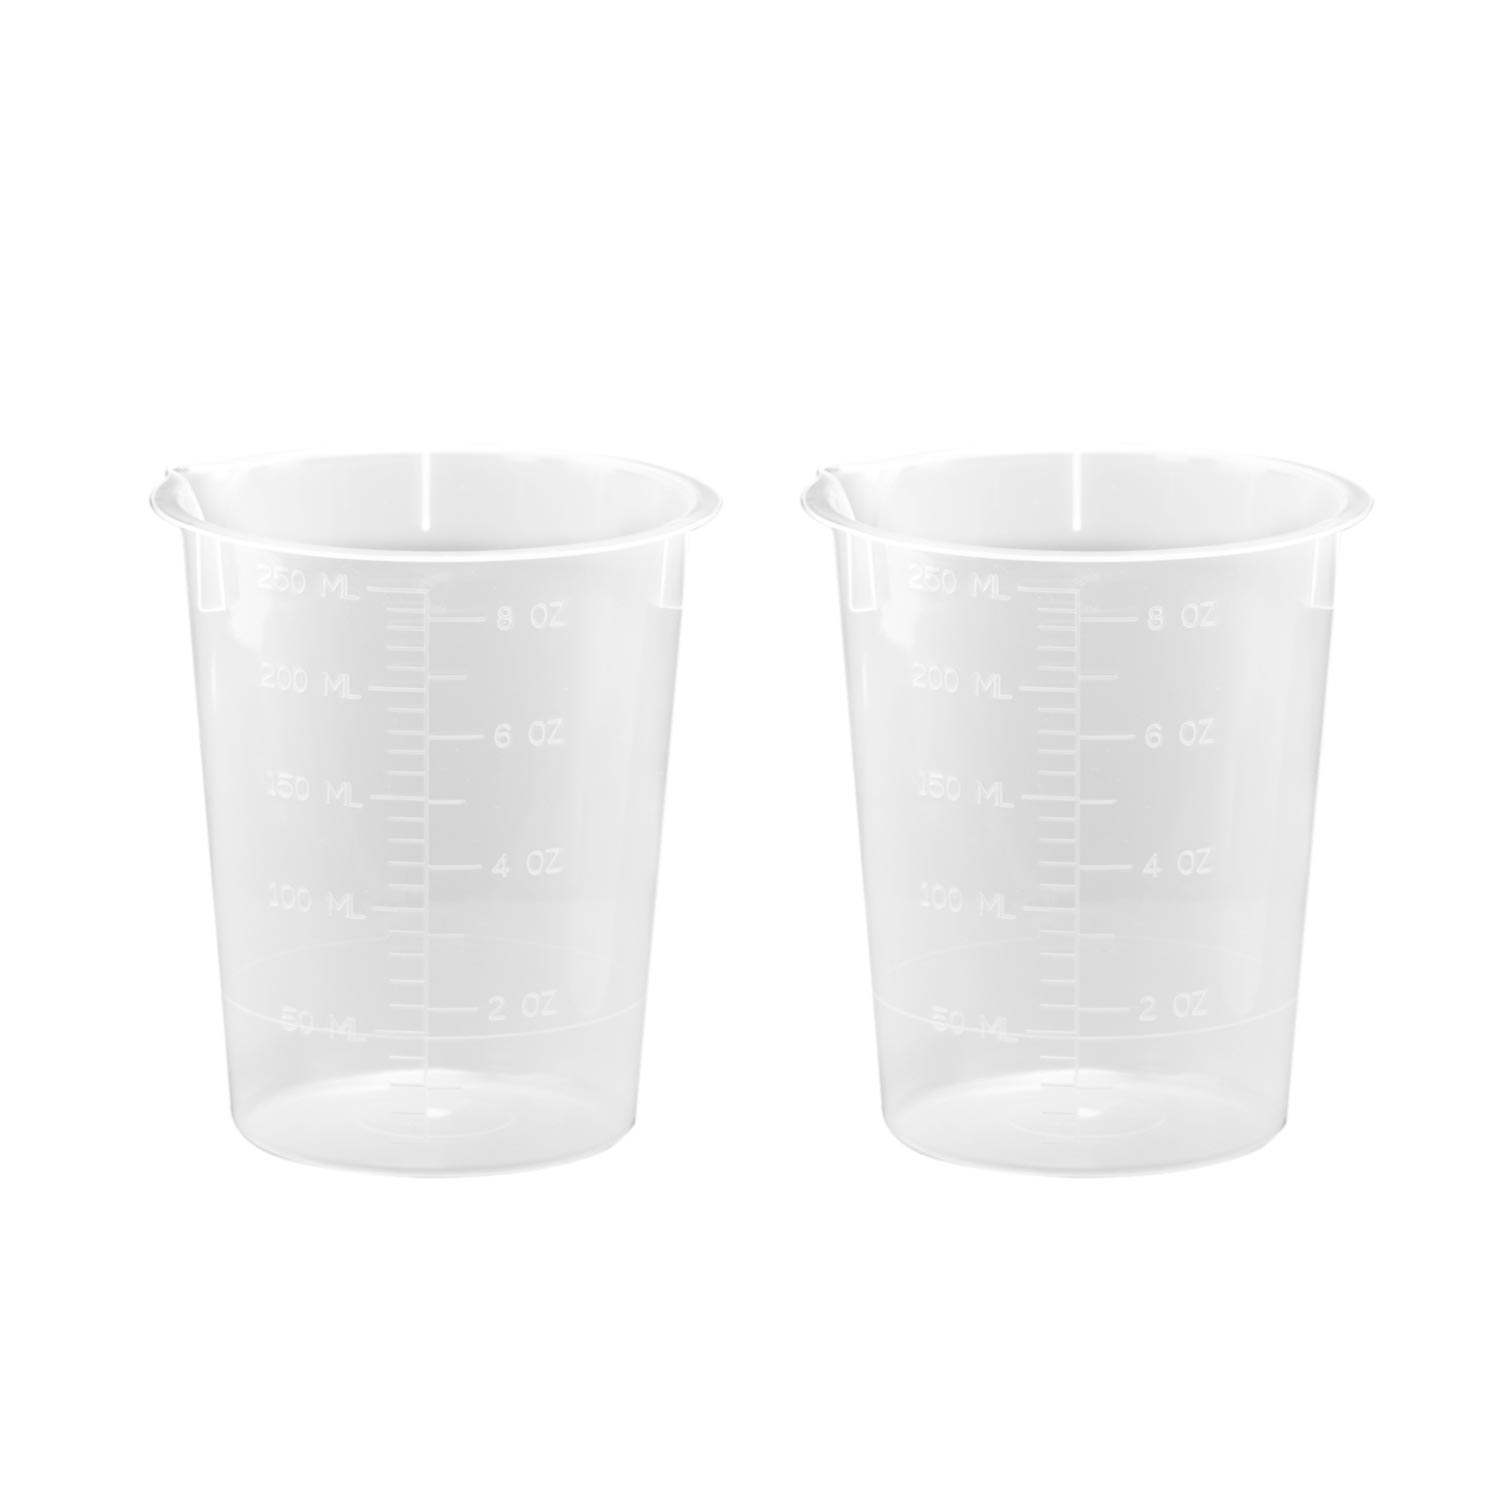 250 mL Plastic Beaker (2 Pack)